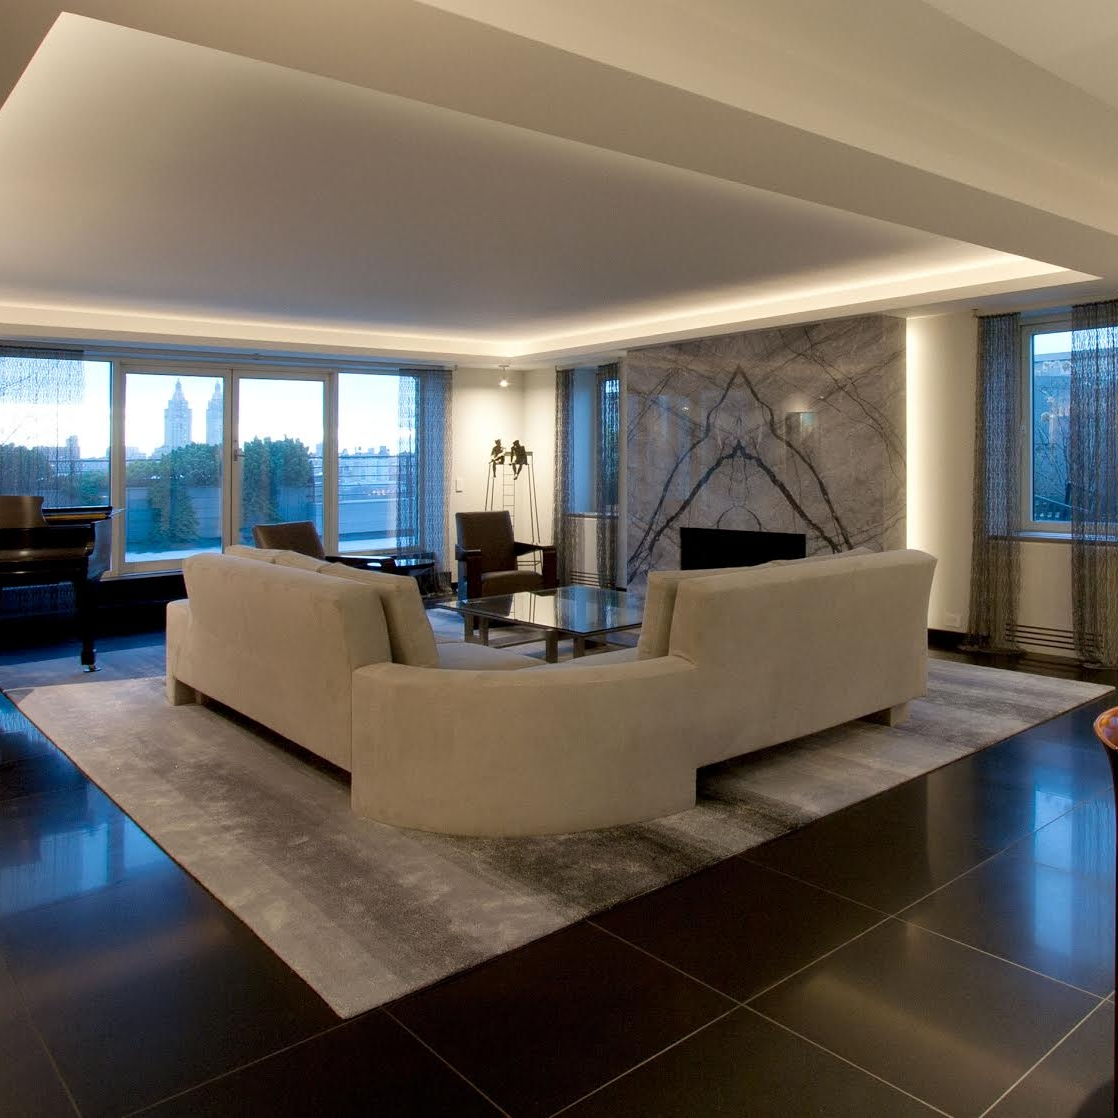 Fifth Avenue Apartment